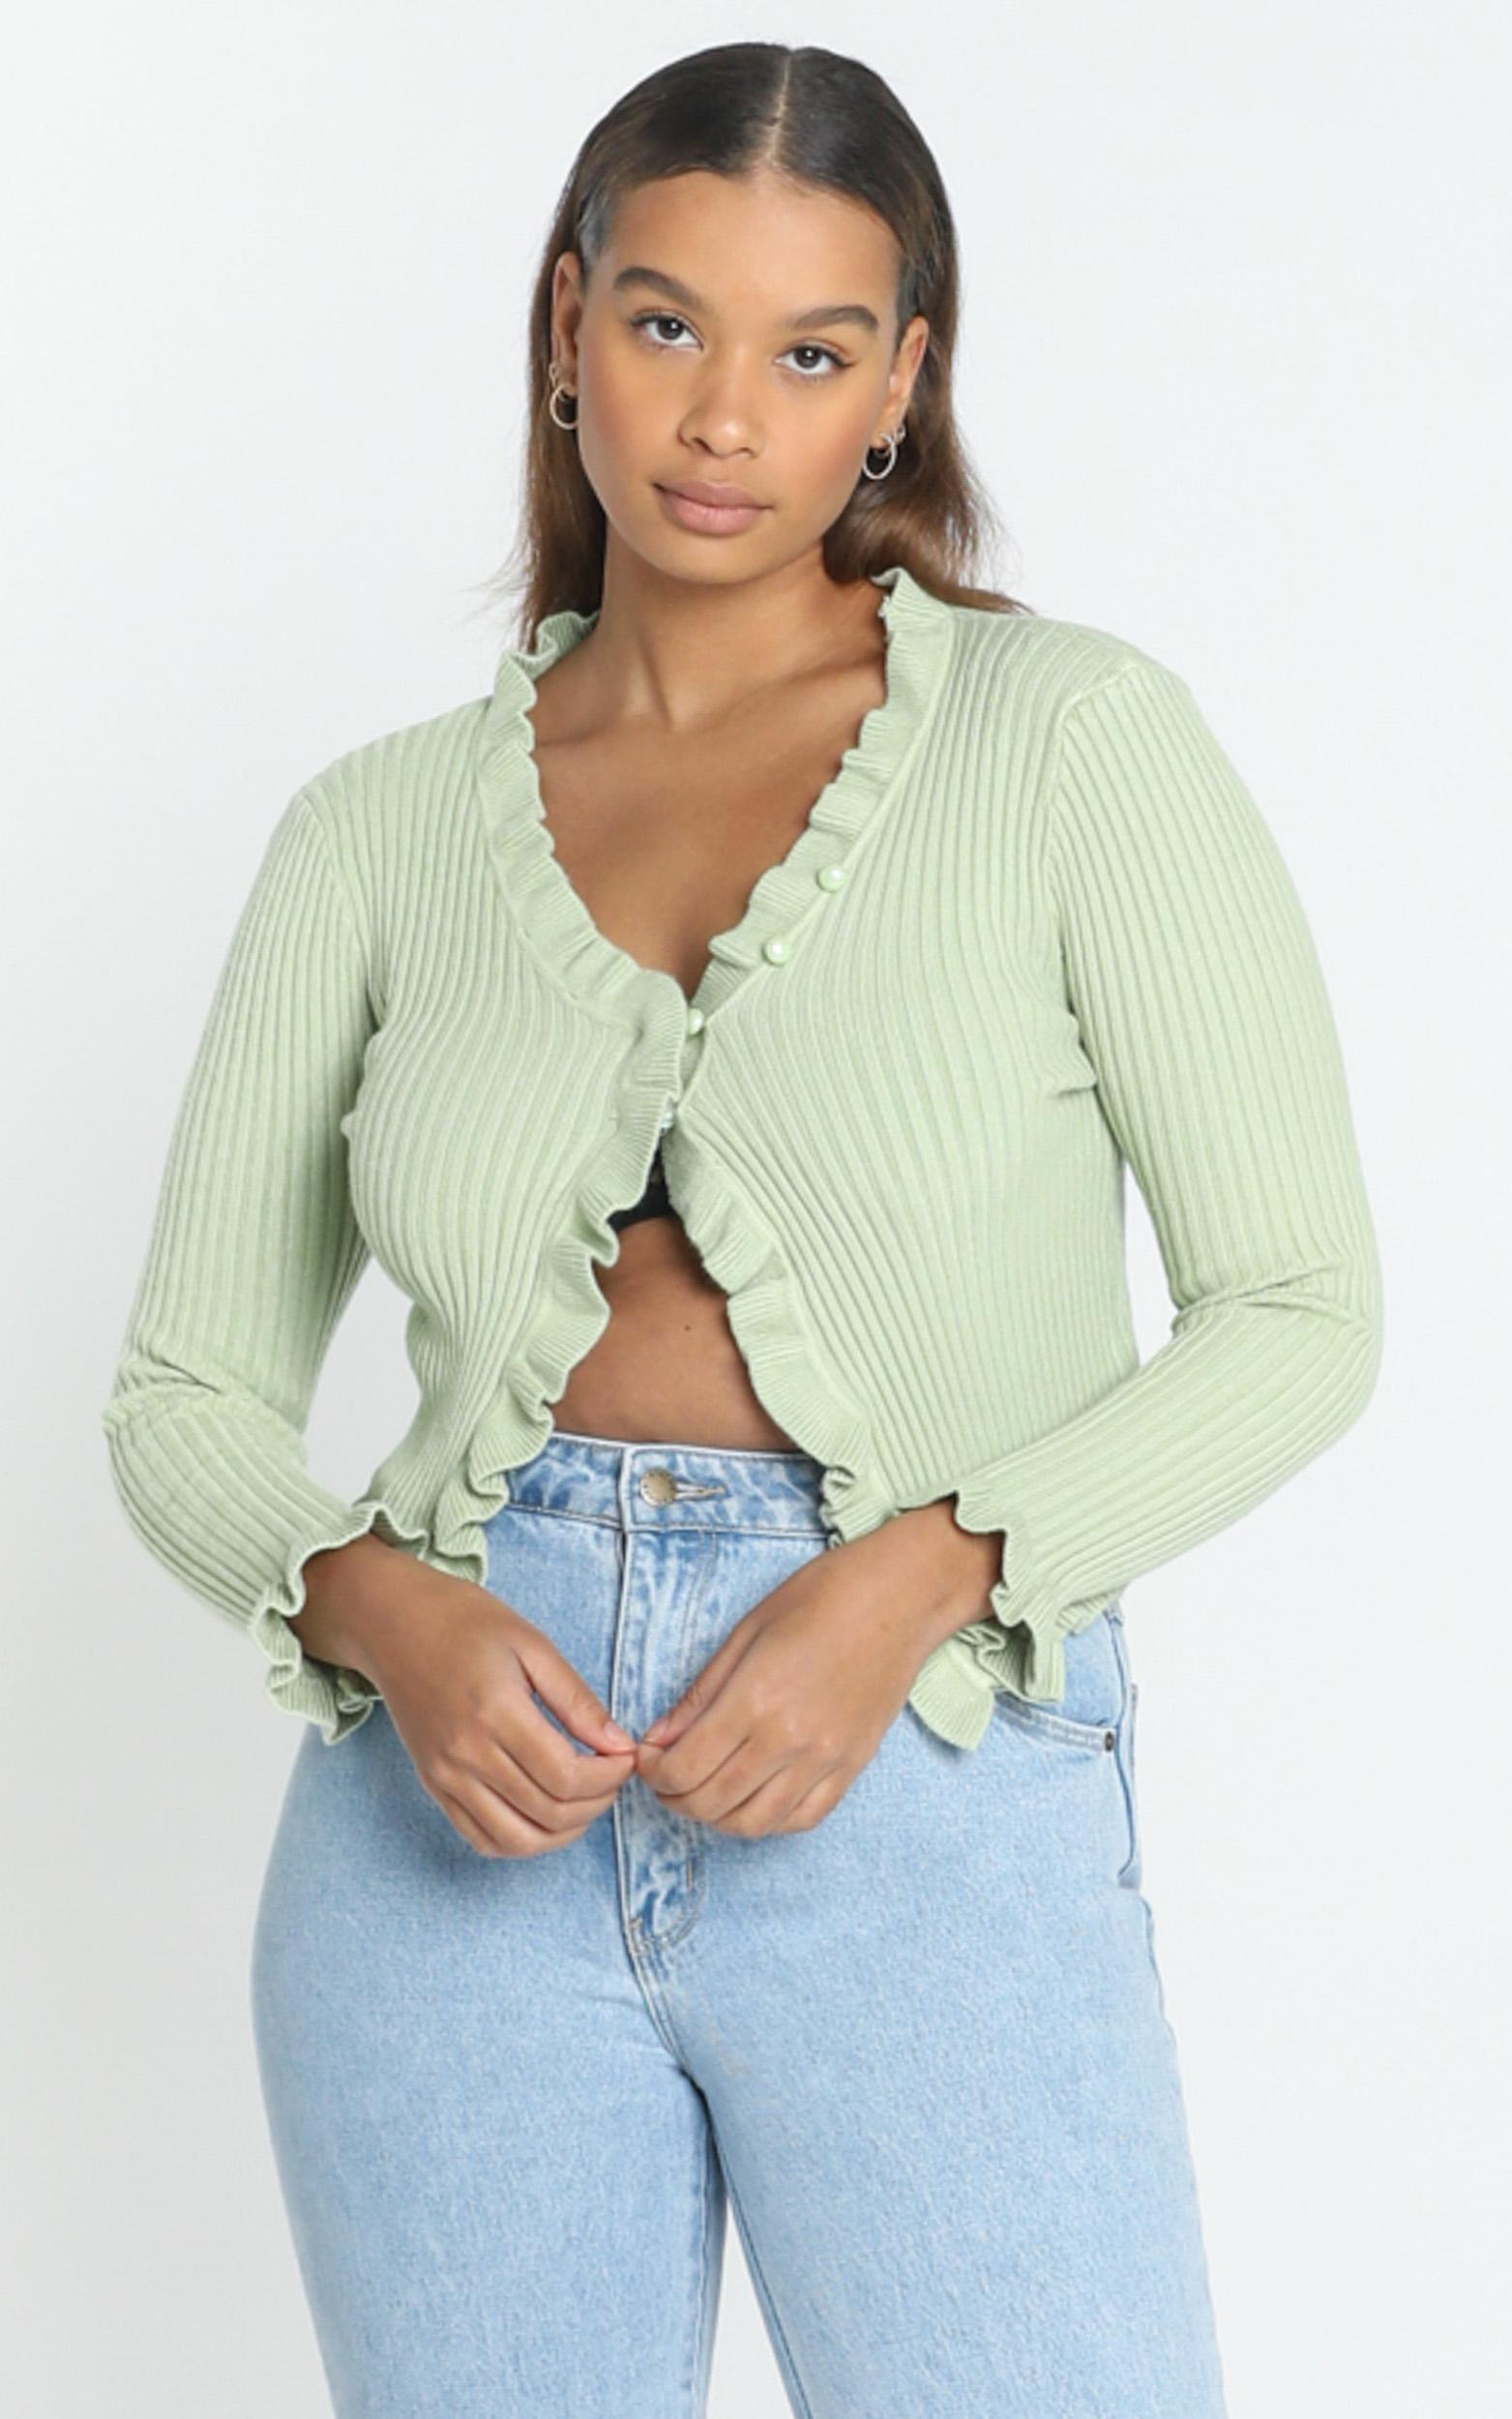 Broden Knit Top in Green - 12 (L), Green, hi-res image number null